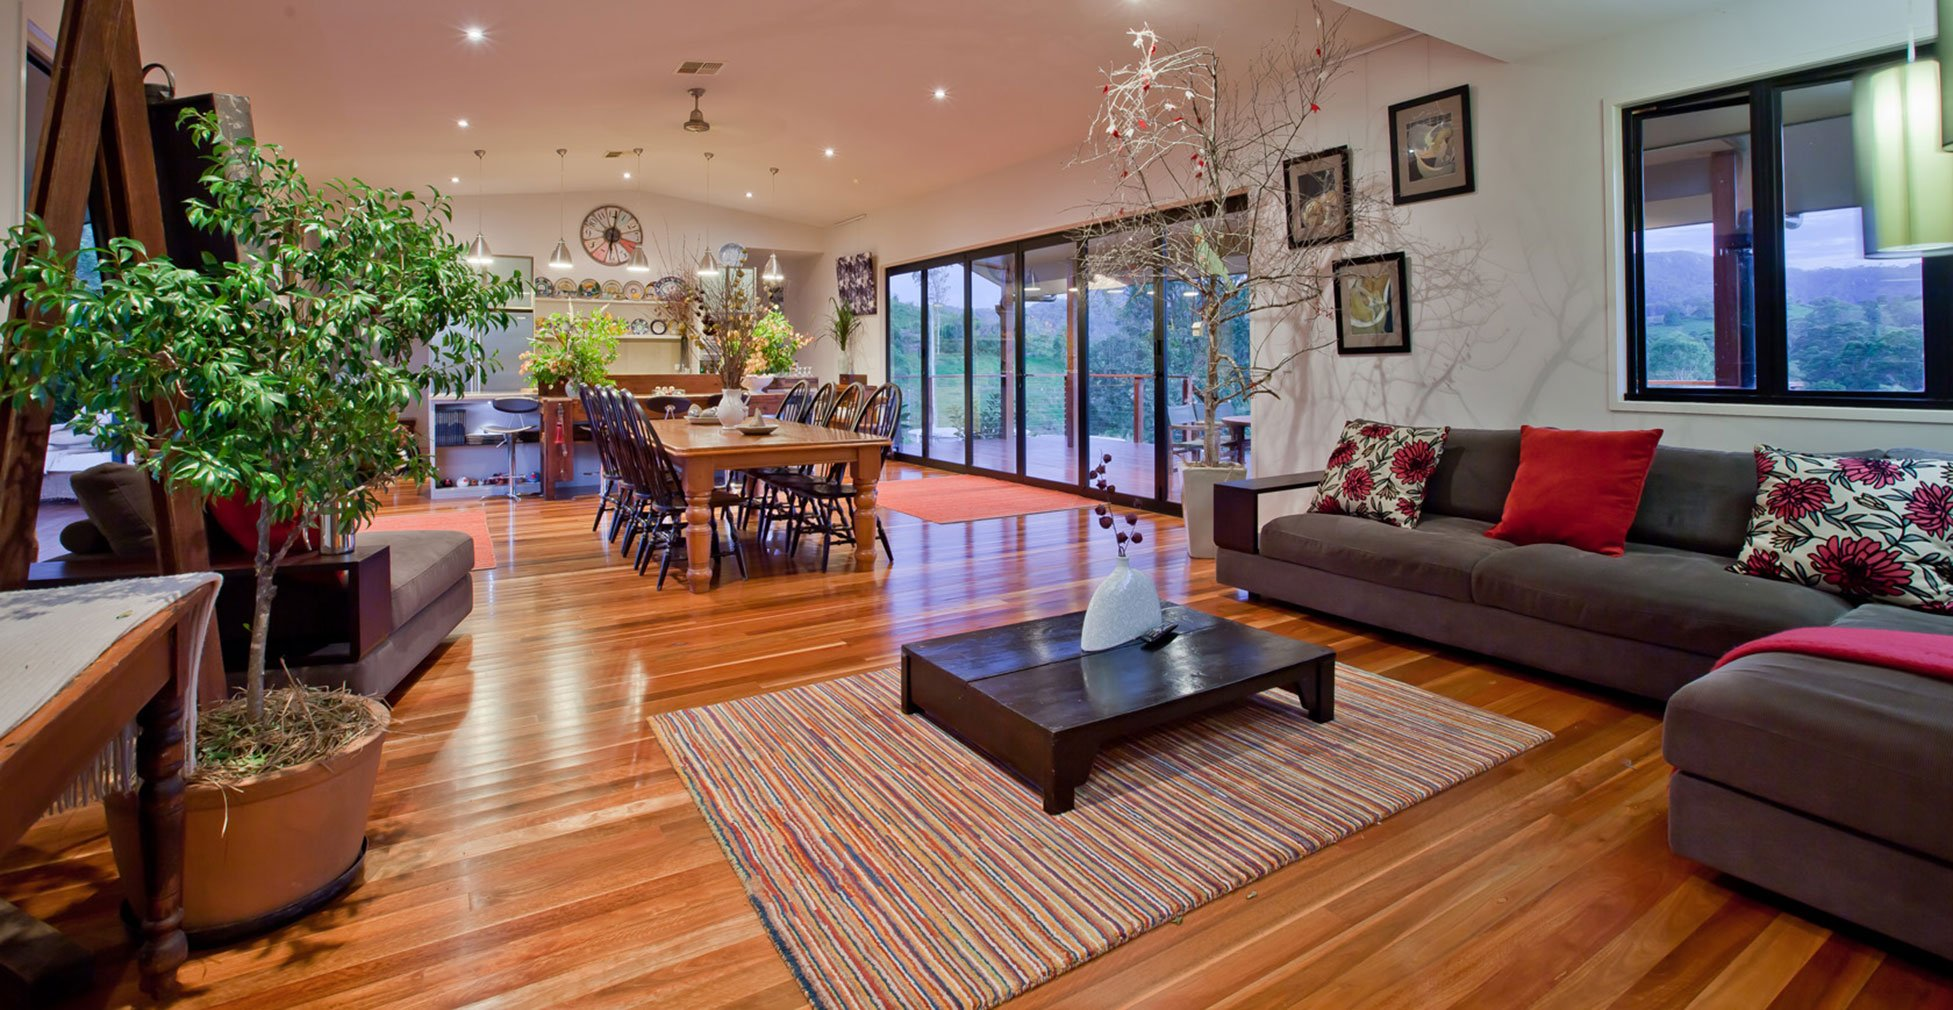 Kenilworth project by mdesign, a building design practice that operates on the Sunshine Coast.